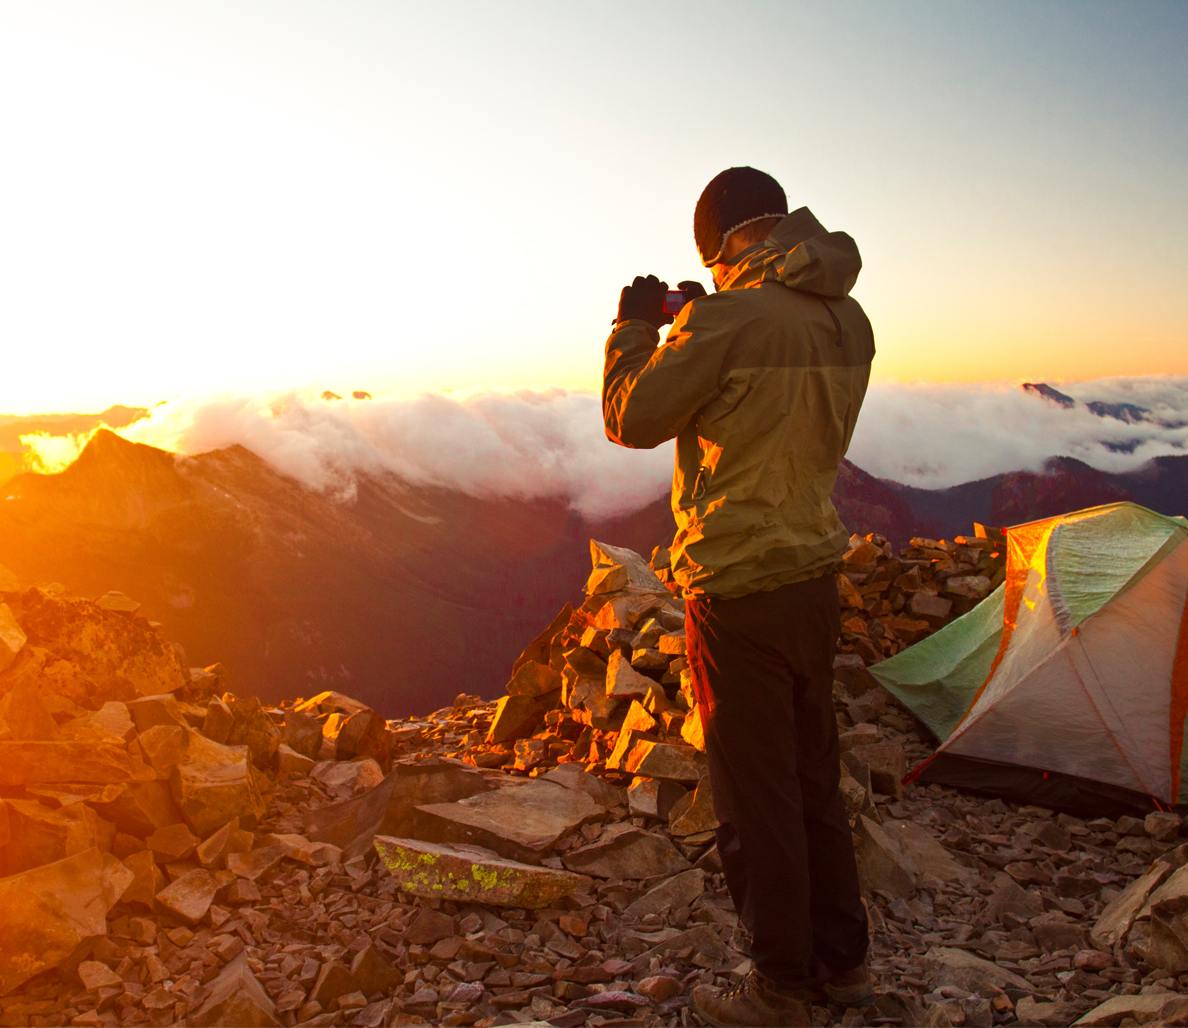 Fit Travel: 20 Epic Adventures to Tackle in Your 20s